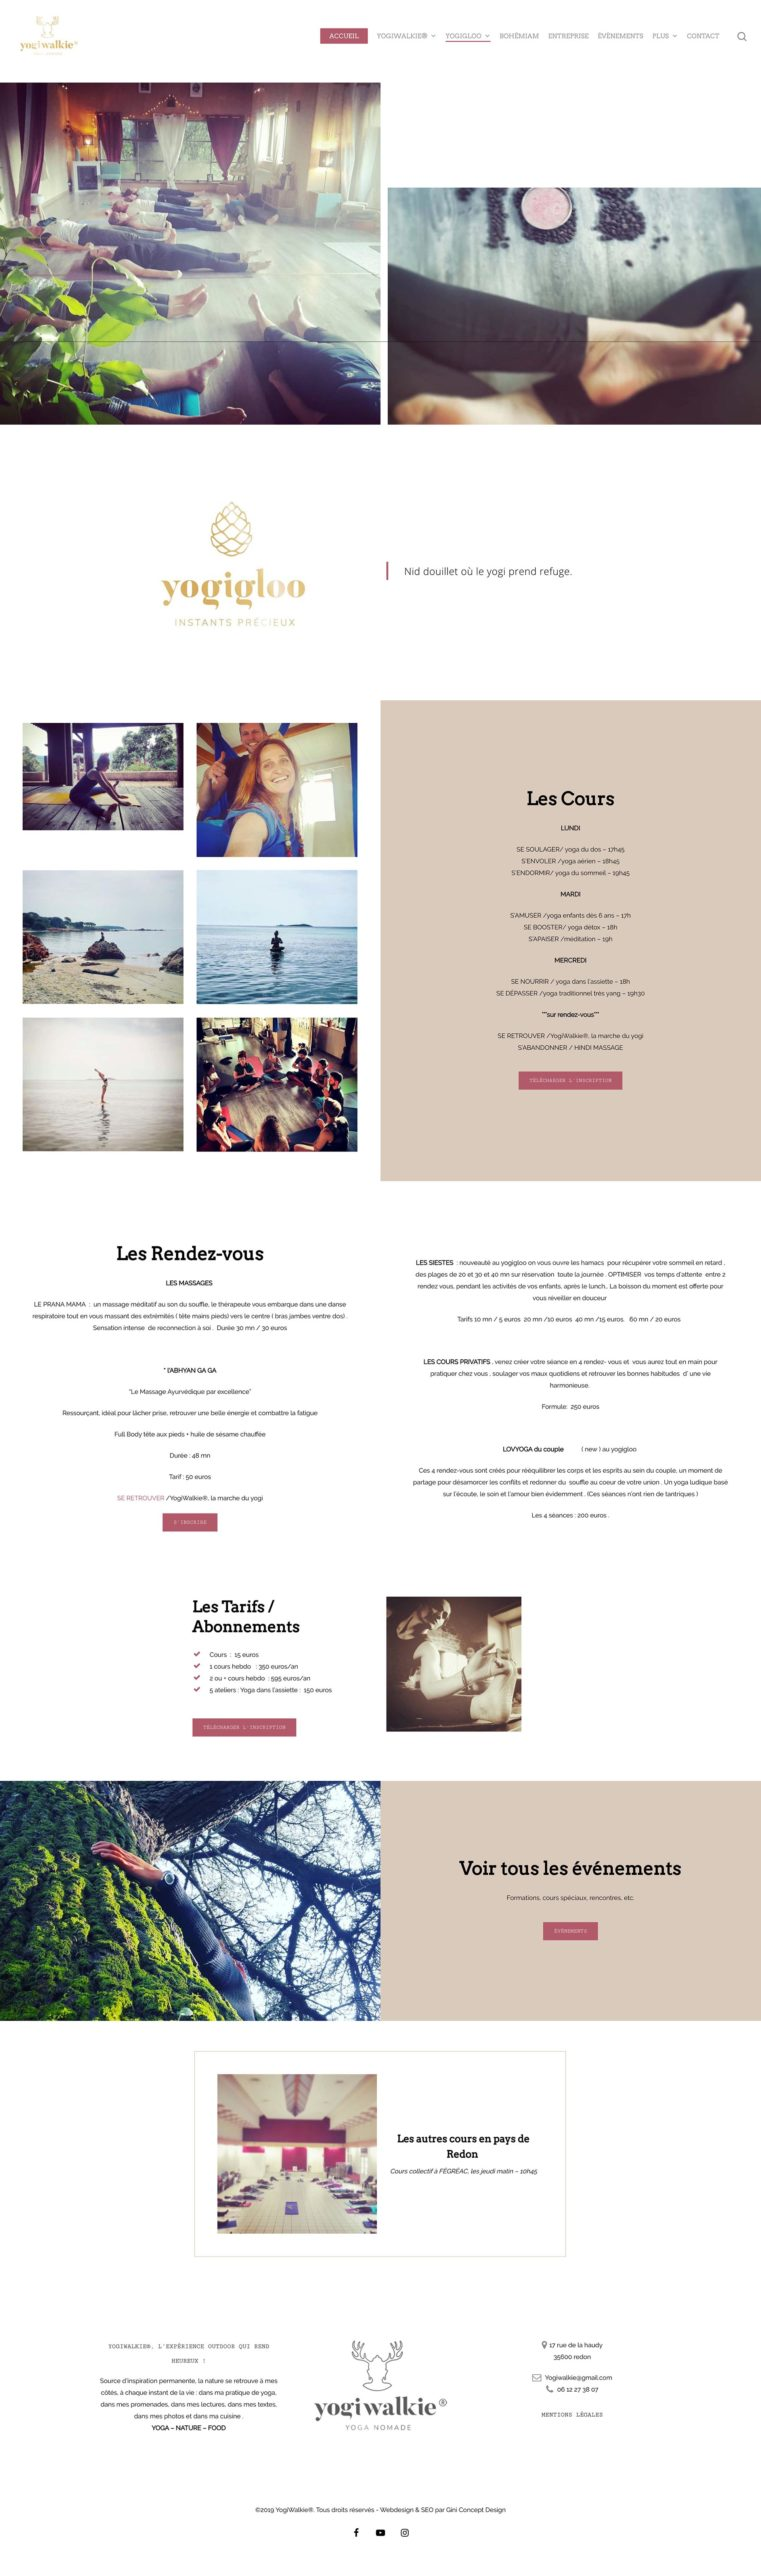 Creation-site-yogiwalkie-gini-concept-design